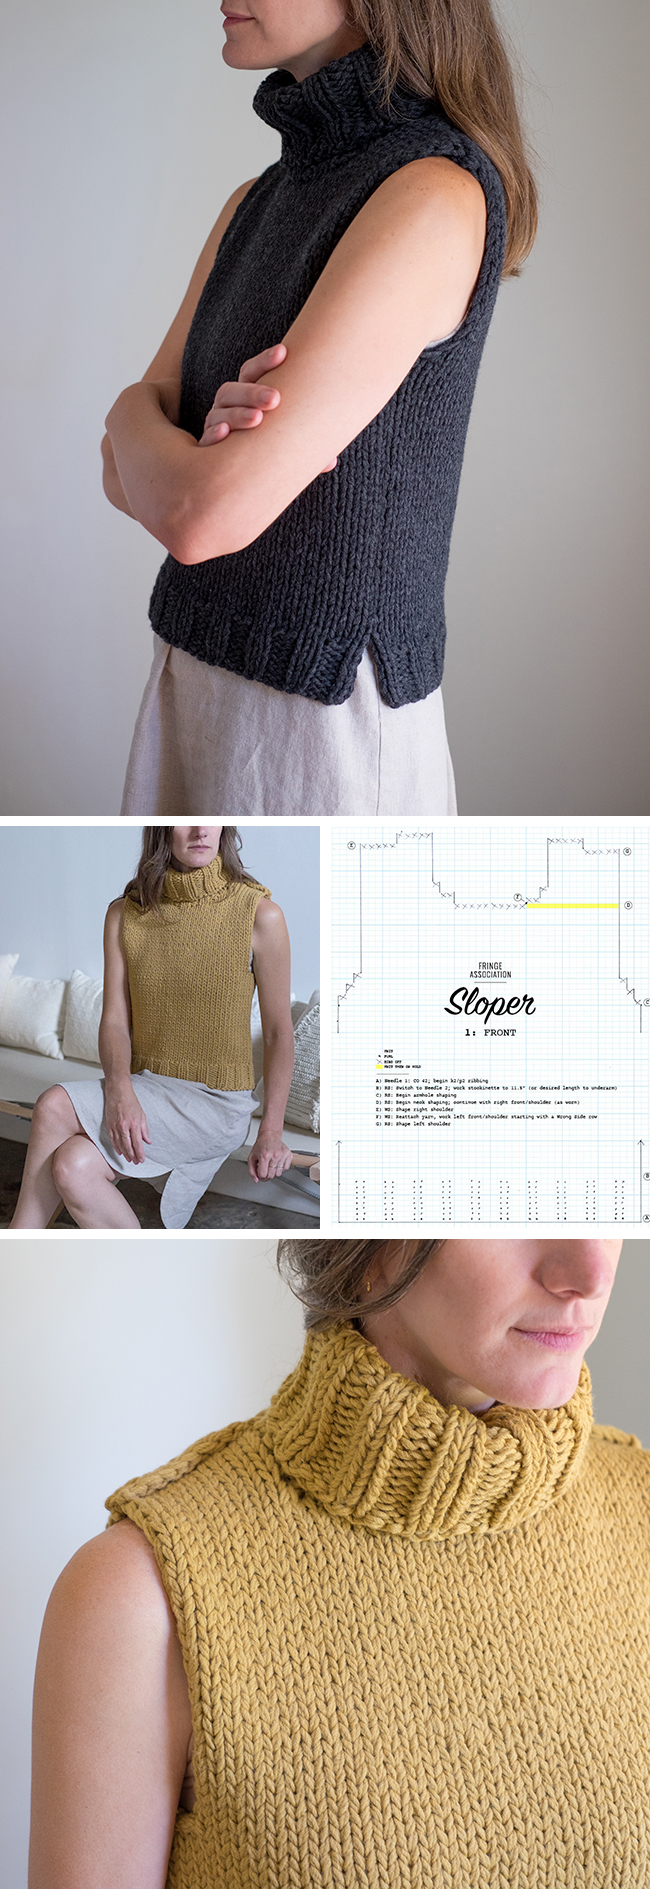 free patterns | Fringe Association